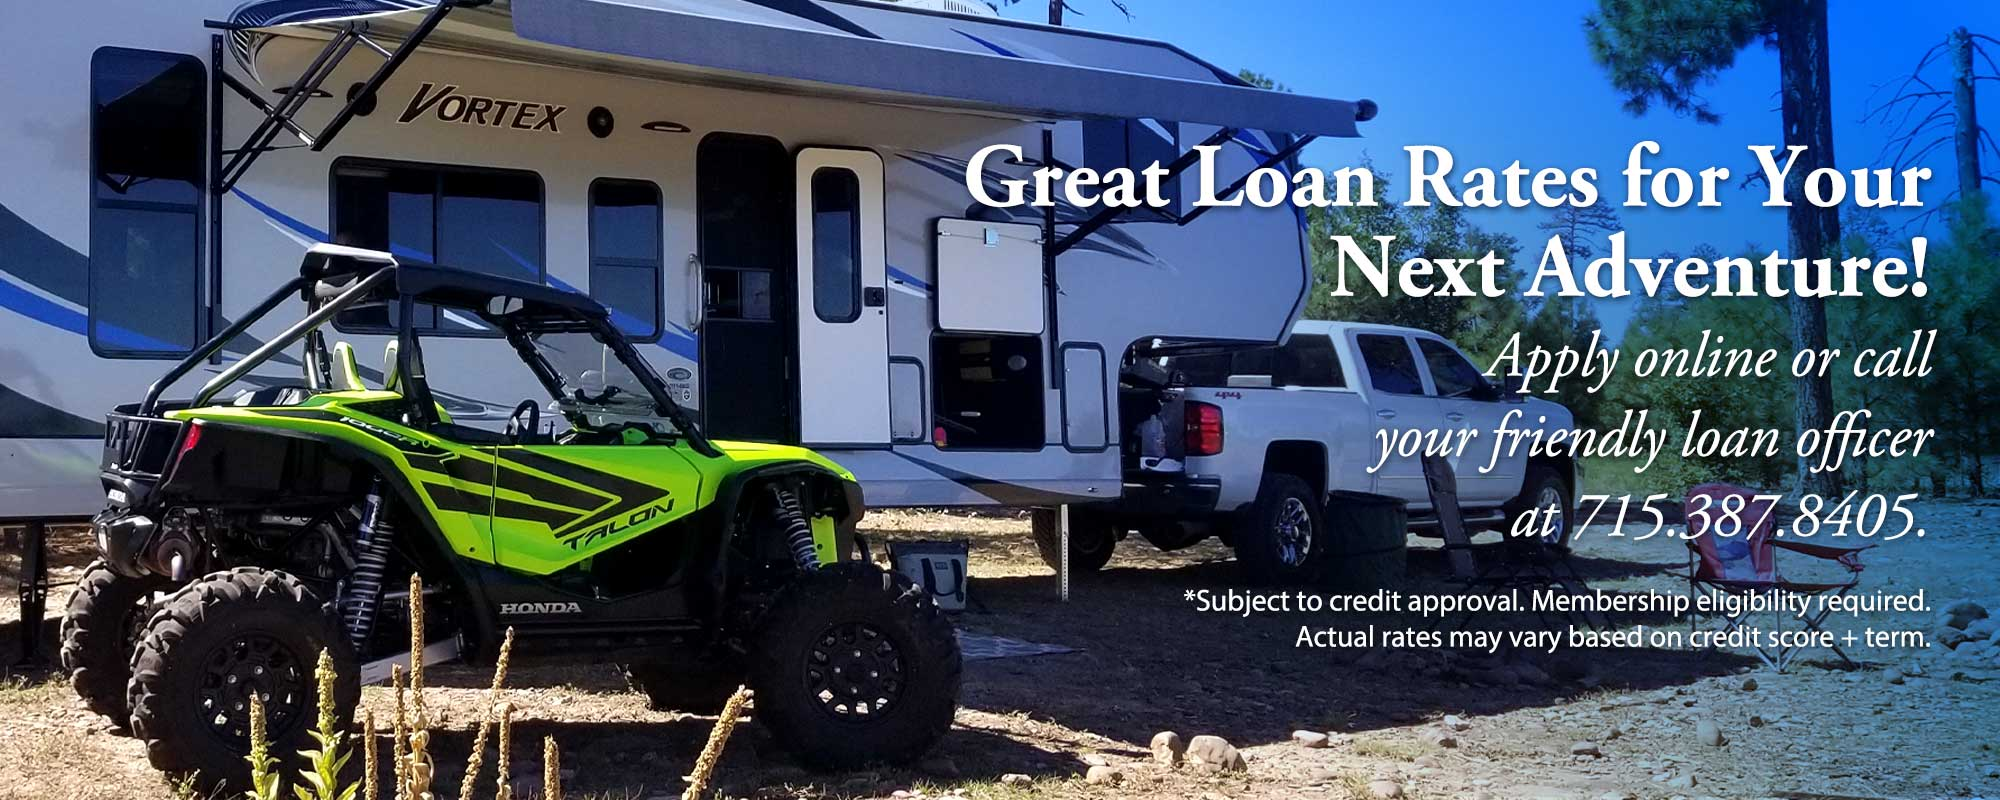 Assistance While Distance Loan Special